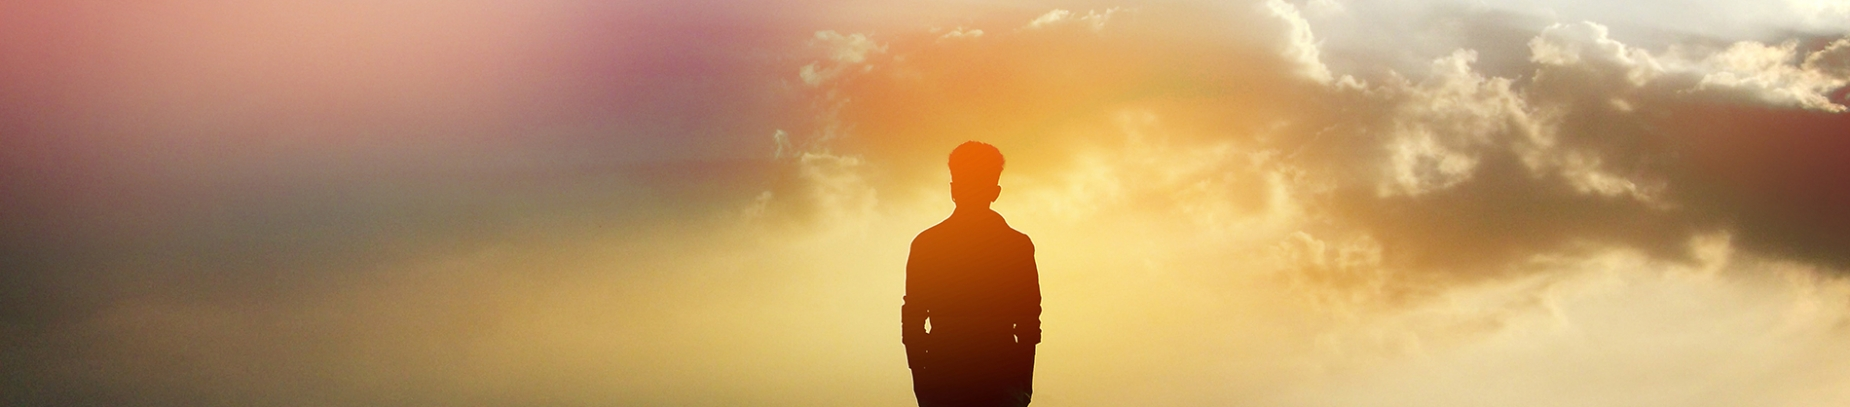 Silhouette of man with coloured sunrise in front of him